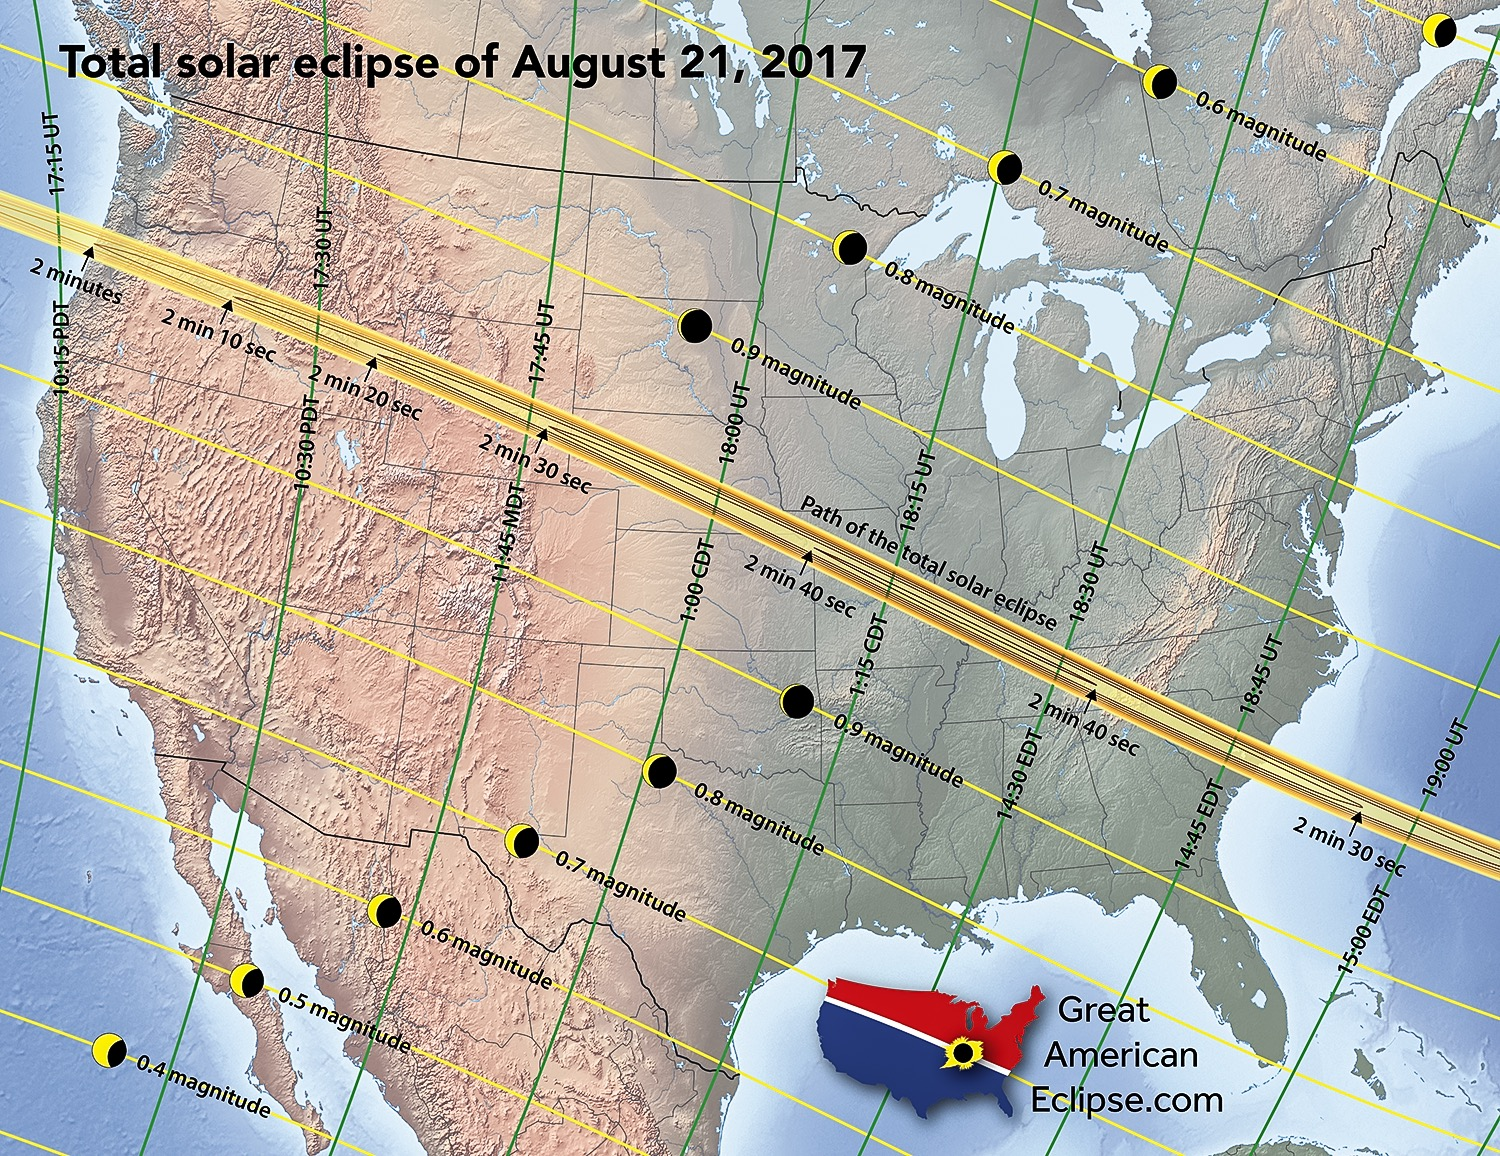 Great American Eclipse 2017 Map